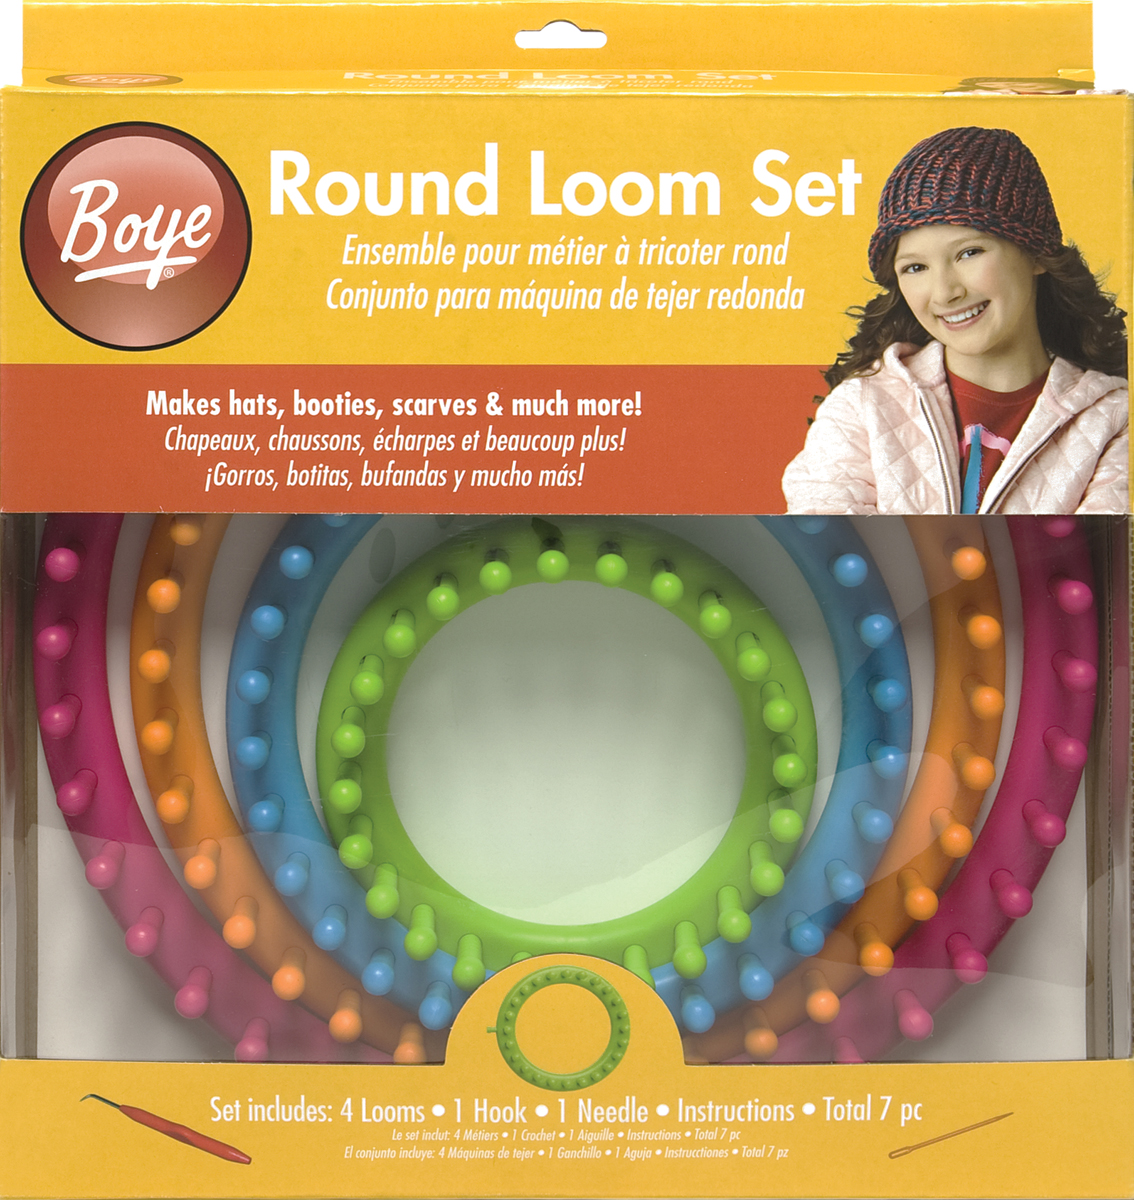 Boye Round Loom Set, 7 pc.